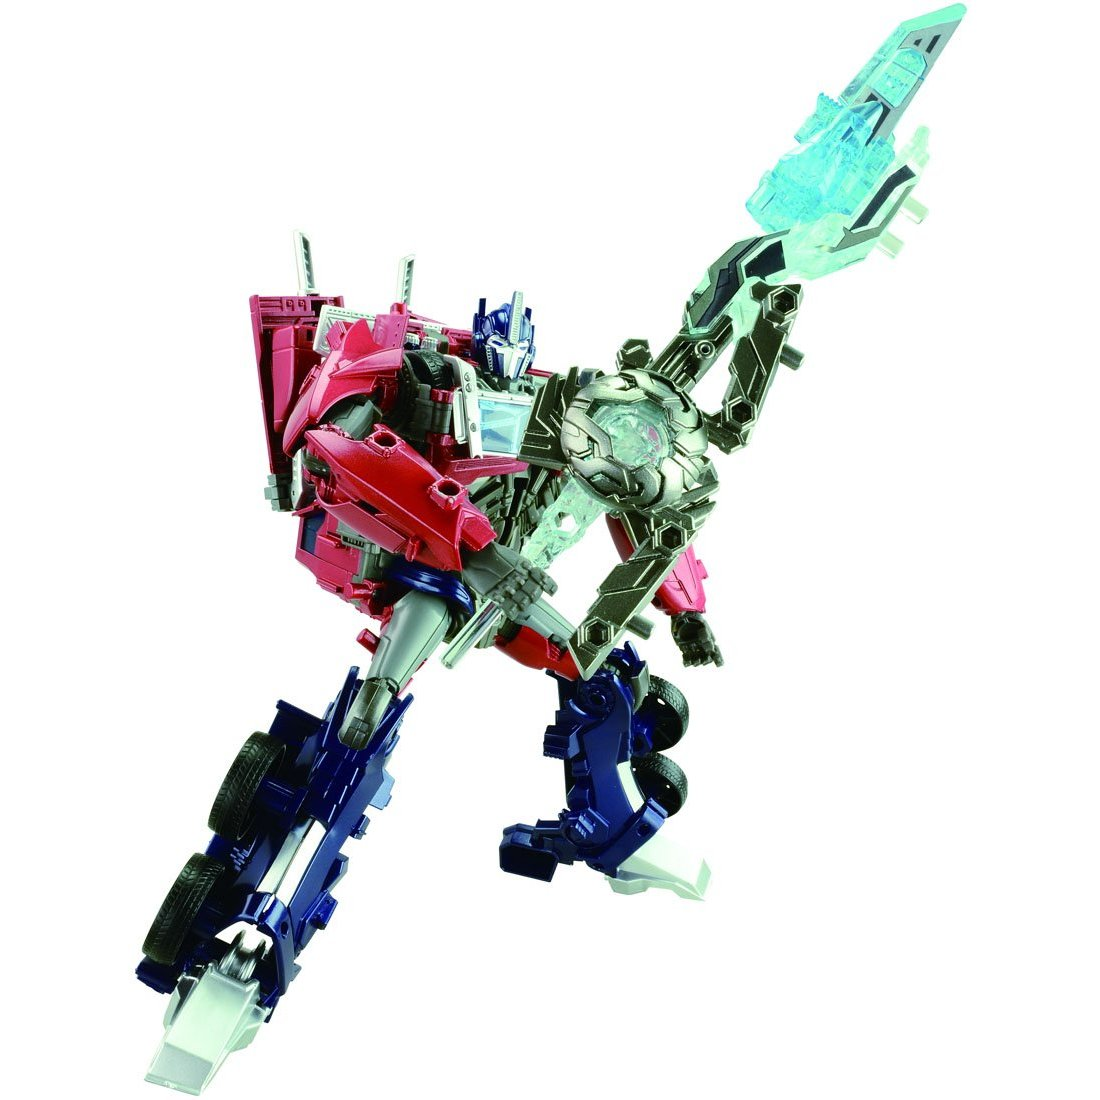 Optimus Prime (Arms Master) with Matrix and Shining R.A. 61AWTjgO6jL_AA1100_